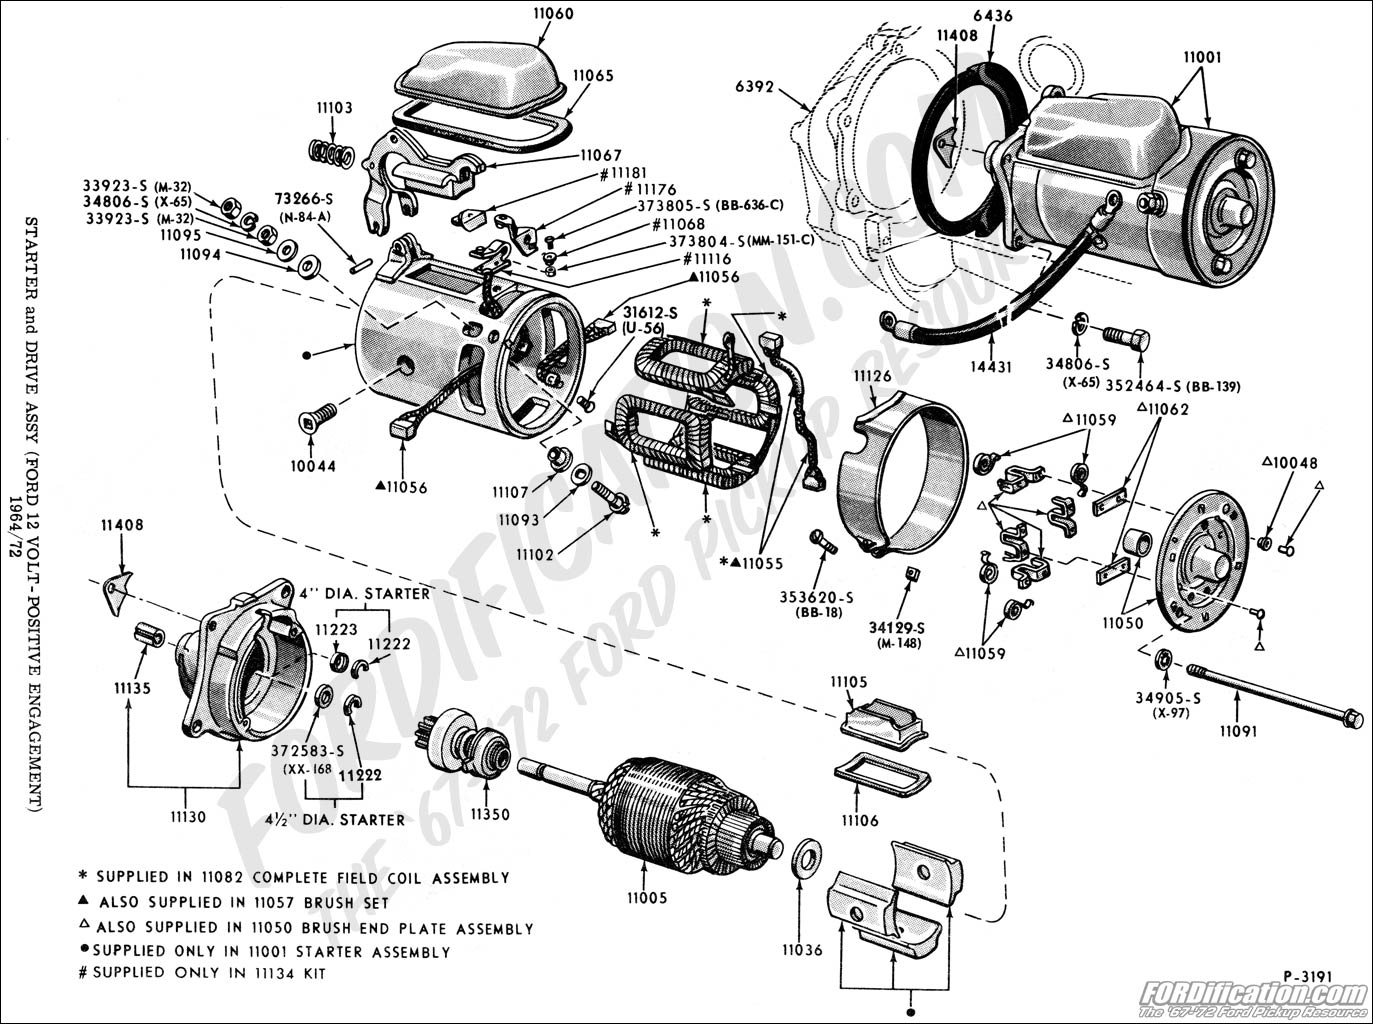 hight resolution of ford truck starter diagram wiring schematic diagram 7 peg kassel de 2000 ford expedition starter wiring diagram ford expedition starter wiring